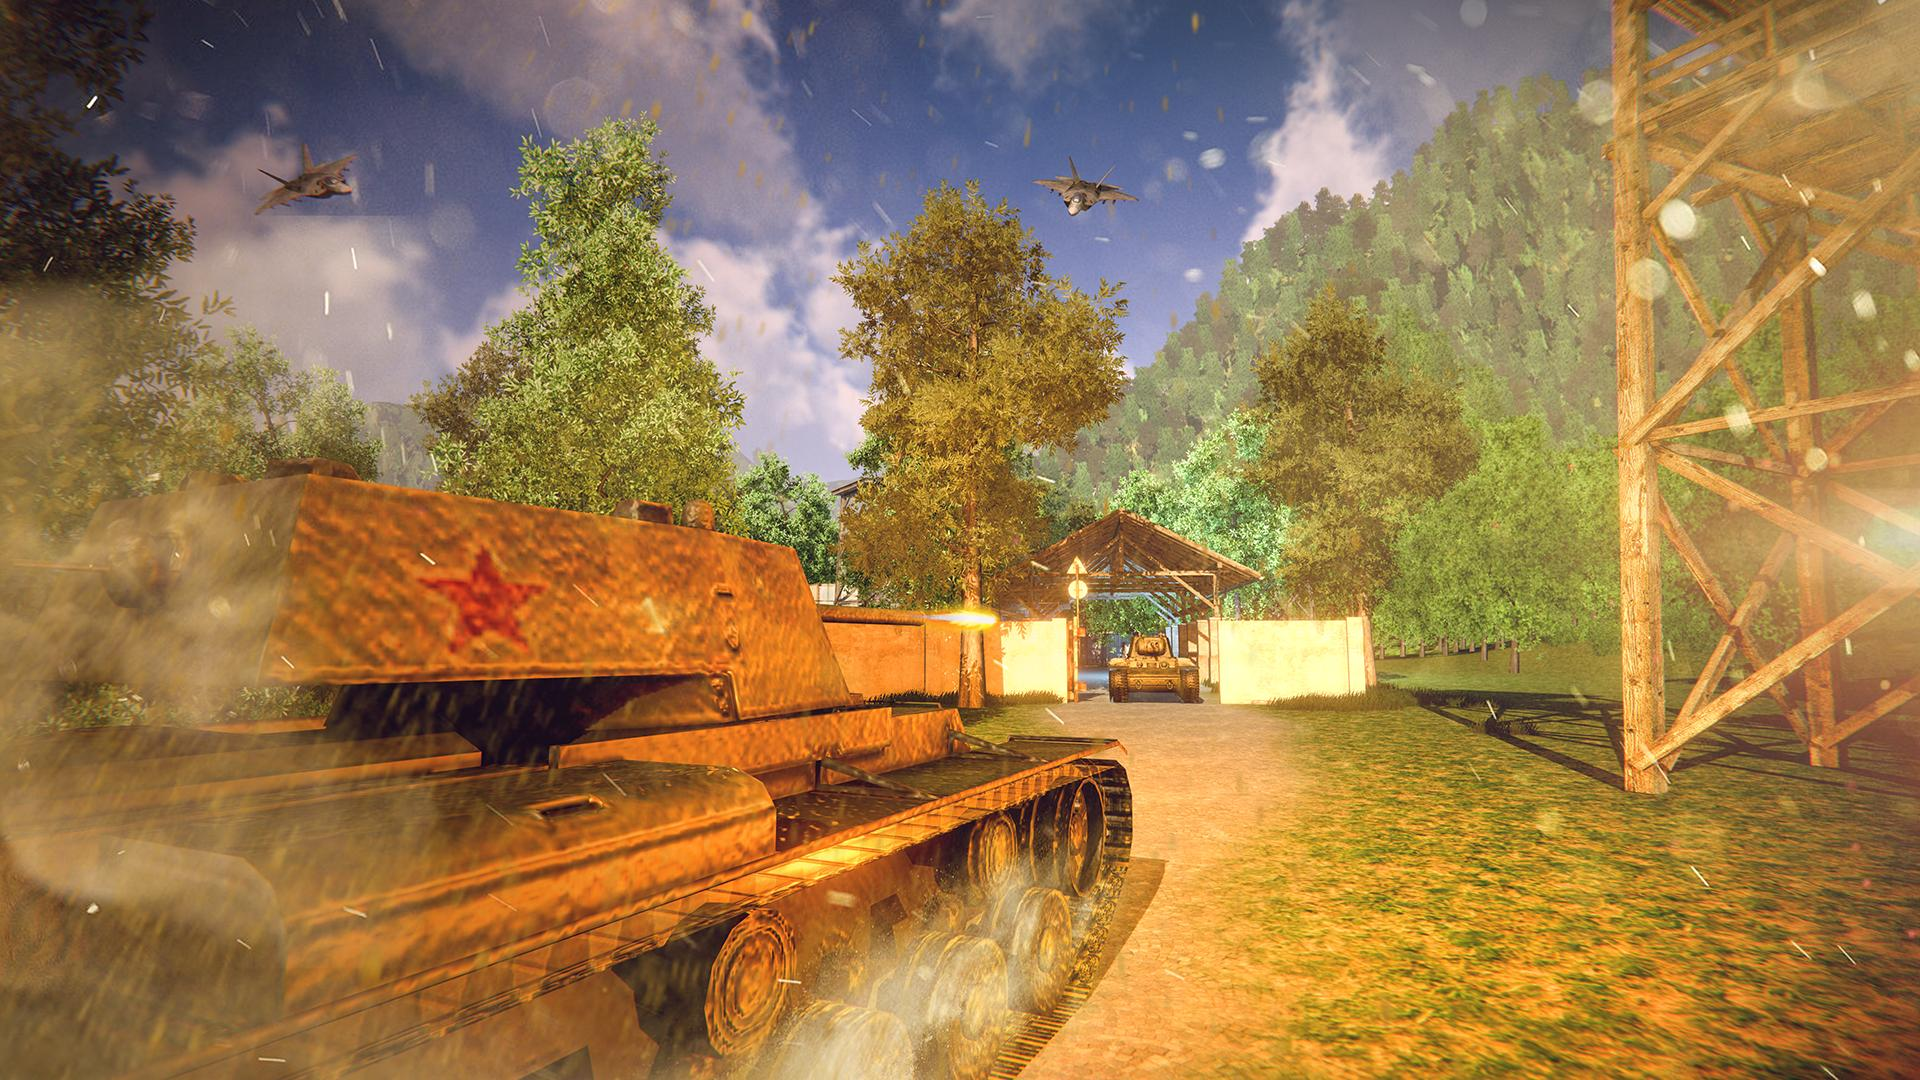 Tank Games 2020 Free Tank Battle Army Combat Games 1.3 Screenshot 14